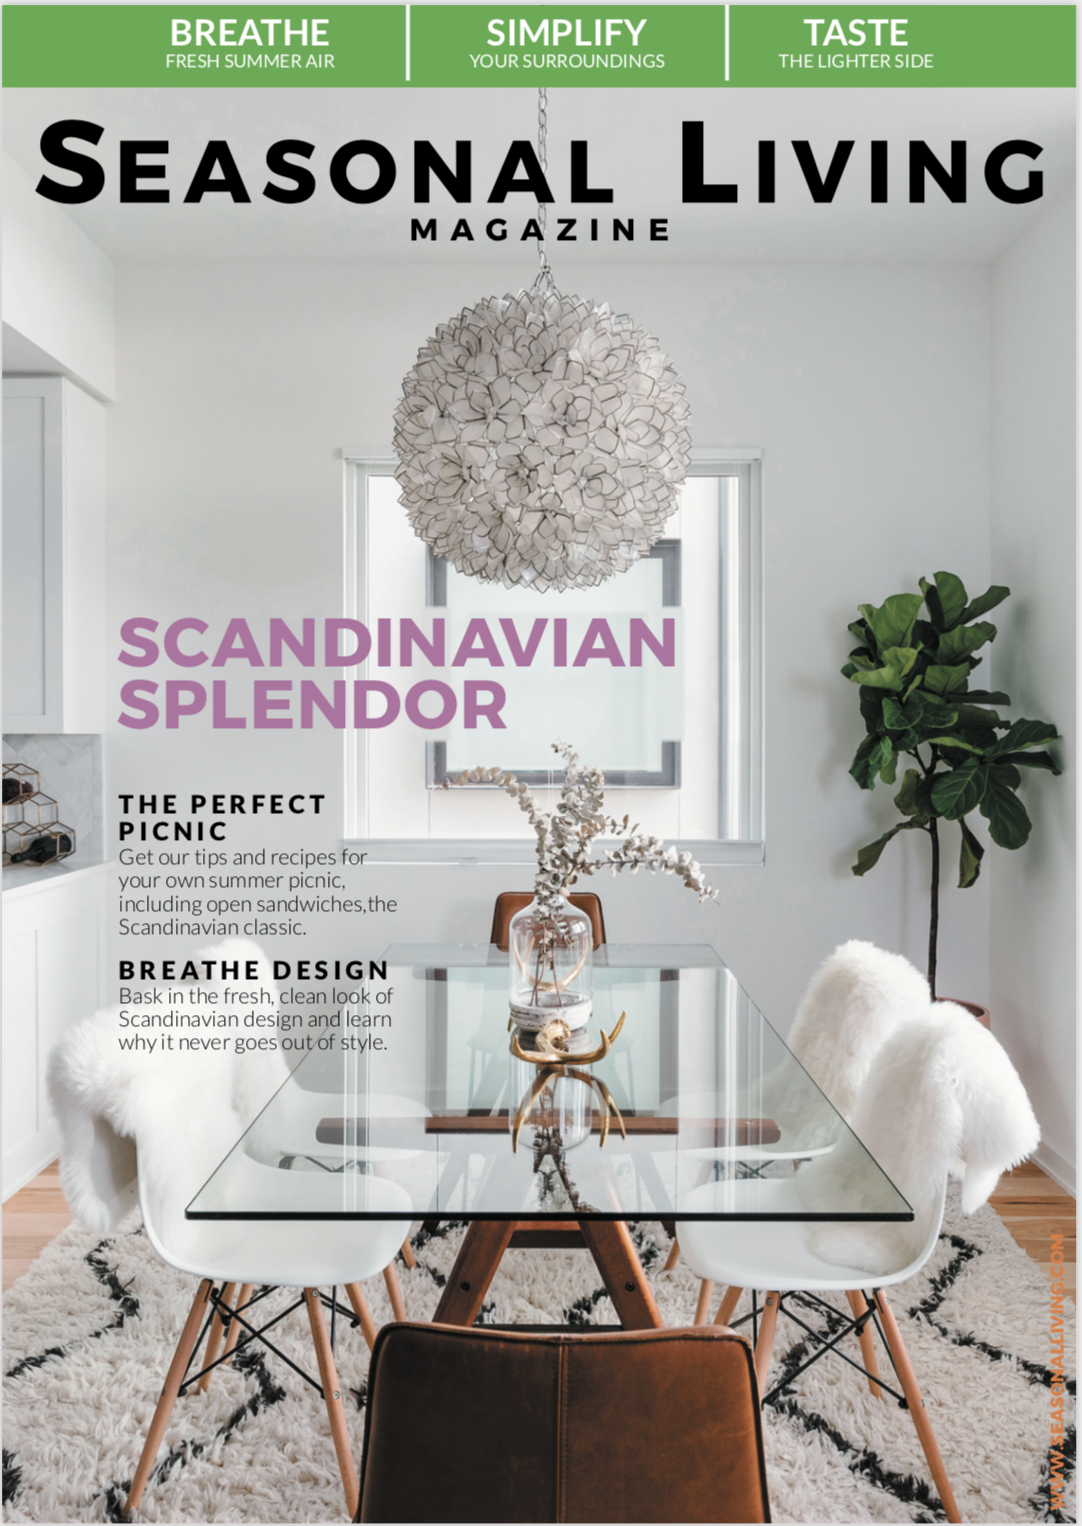 Seasonal Living Magazine Scandinavia